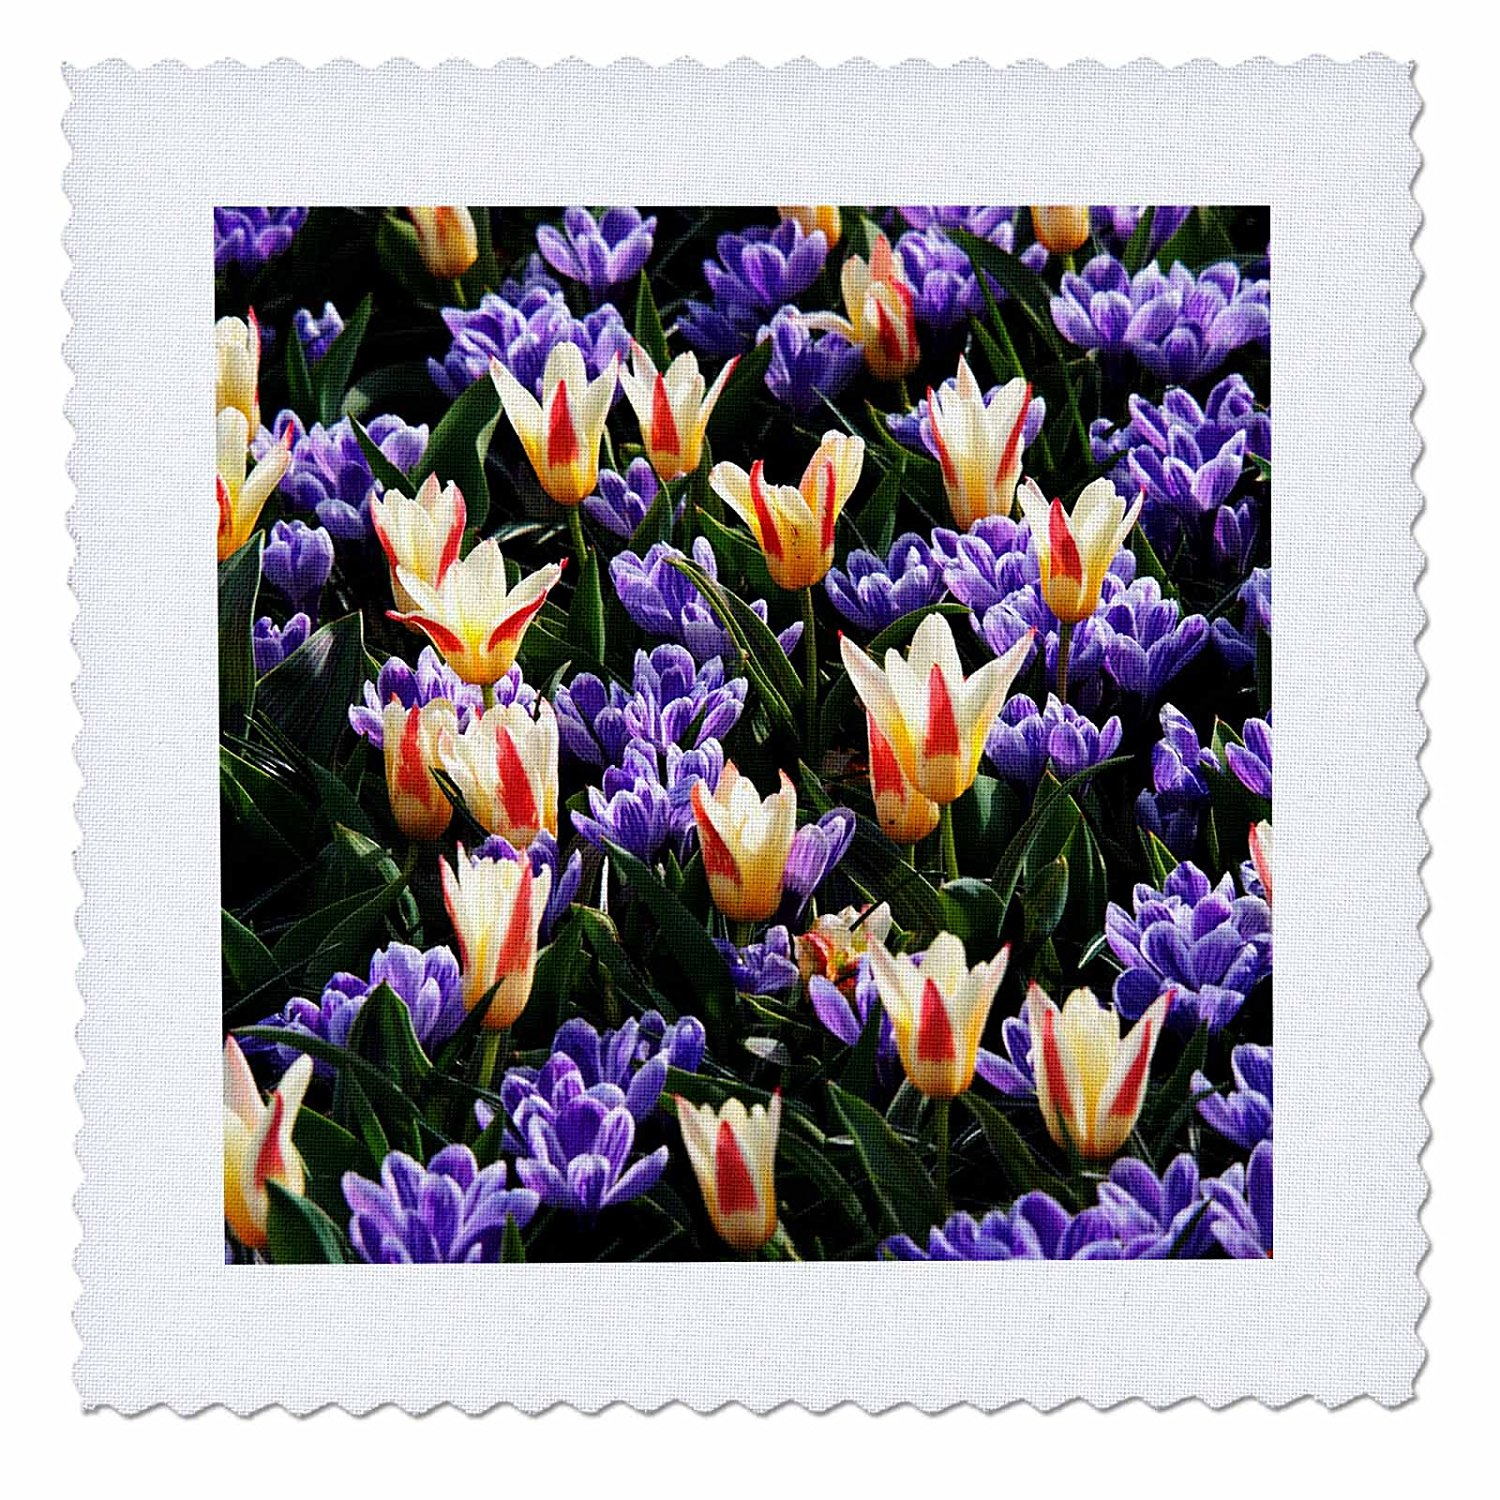 3dRose Danita Delimont - Flowers - Netherlands, Flower Displays. - 8x8 inch quilt square (qs_277711_3)